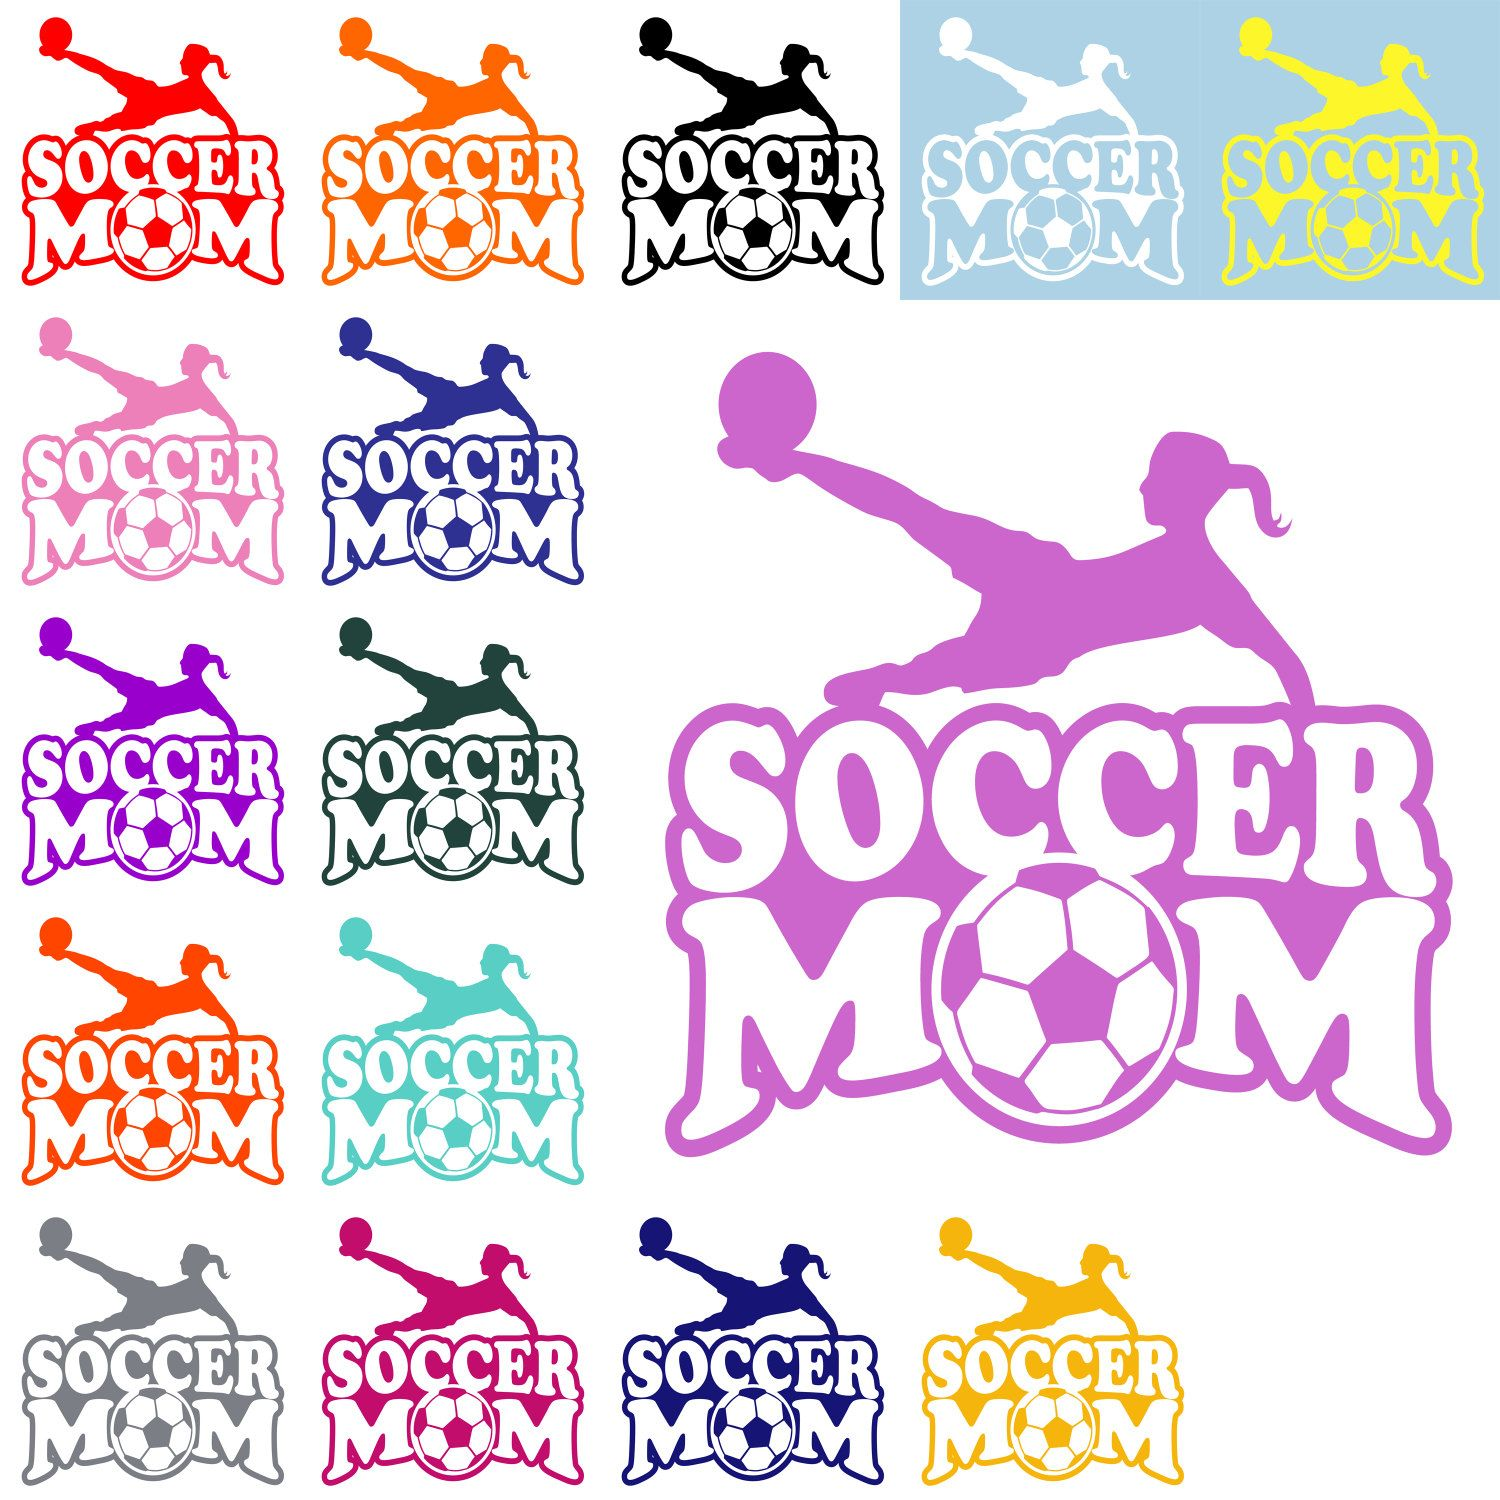 VOLLEYBALL MOM DECAL Volleyball Mom Sticker Sports Mom Decal - Window decals for cars sports